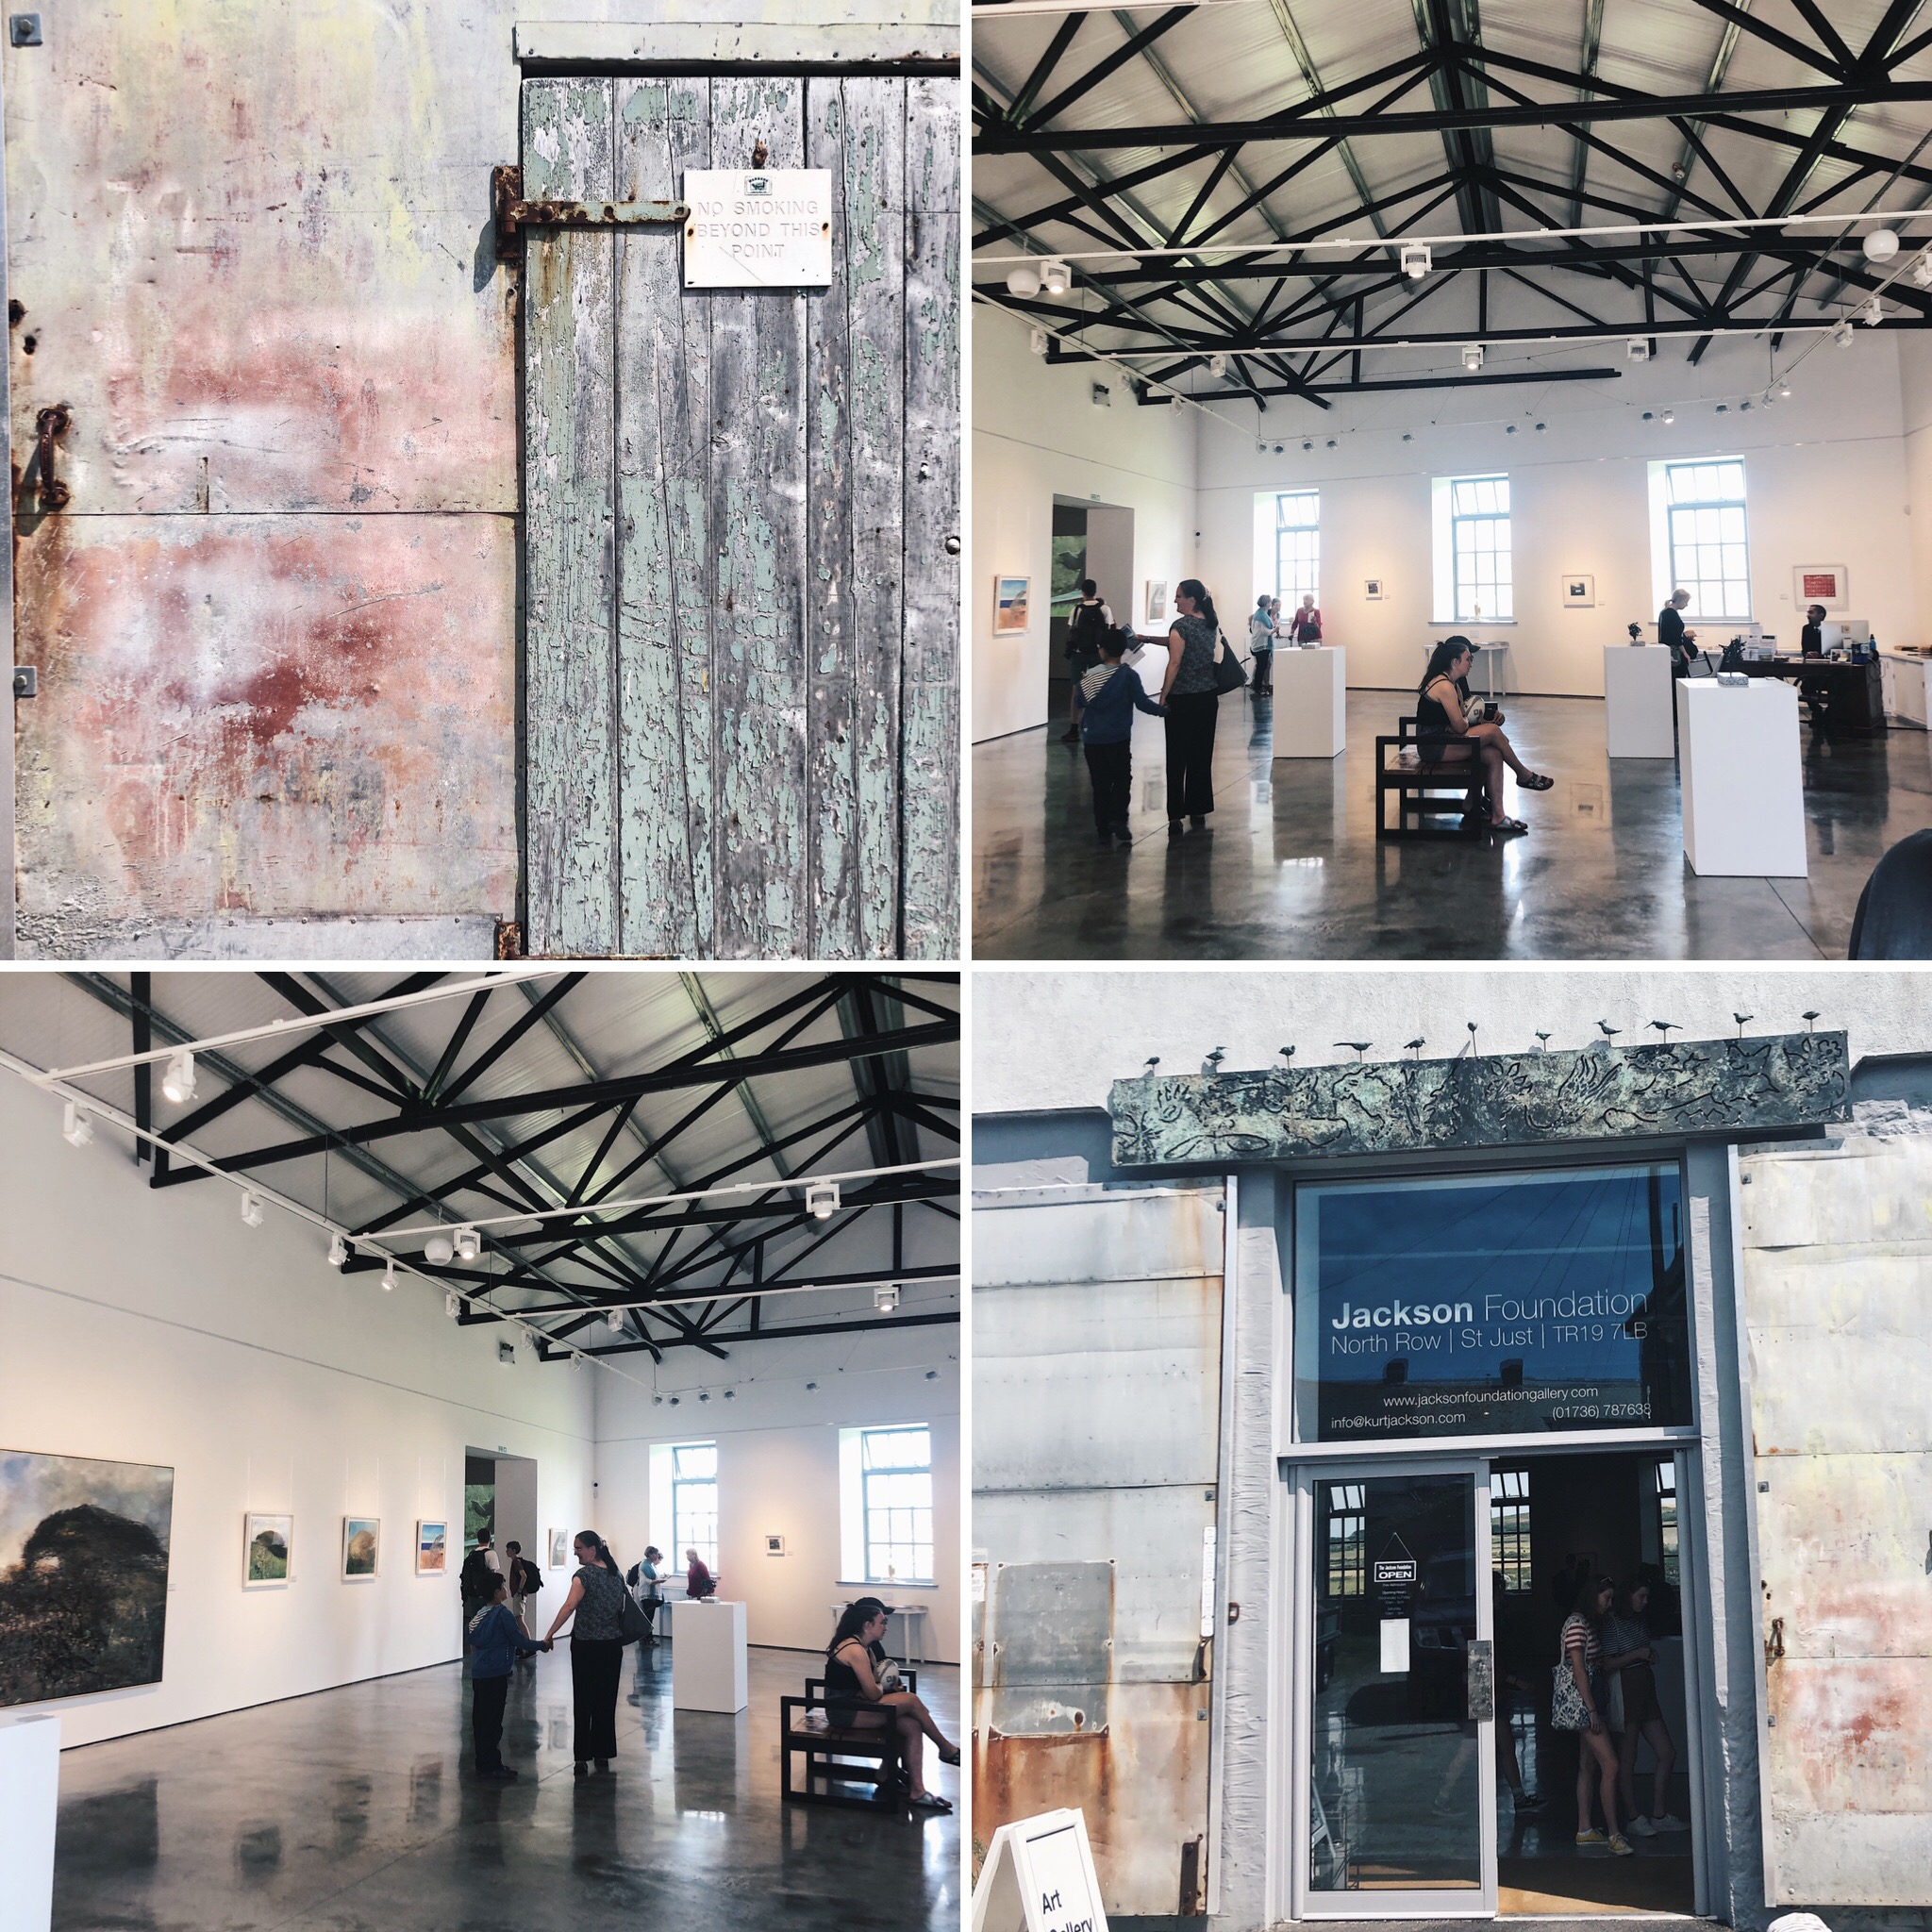 The Kurt Jackson Foundation in St Just. Industrial, spacious and inspiring. The polished concrete floor was stunning by itself!